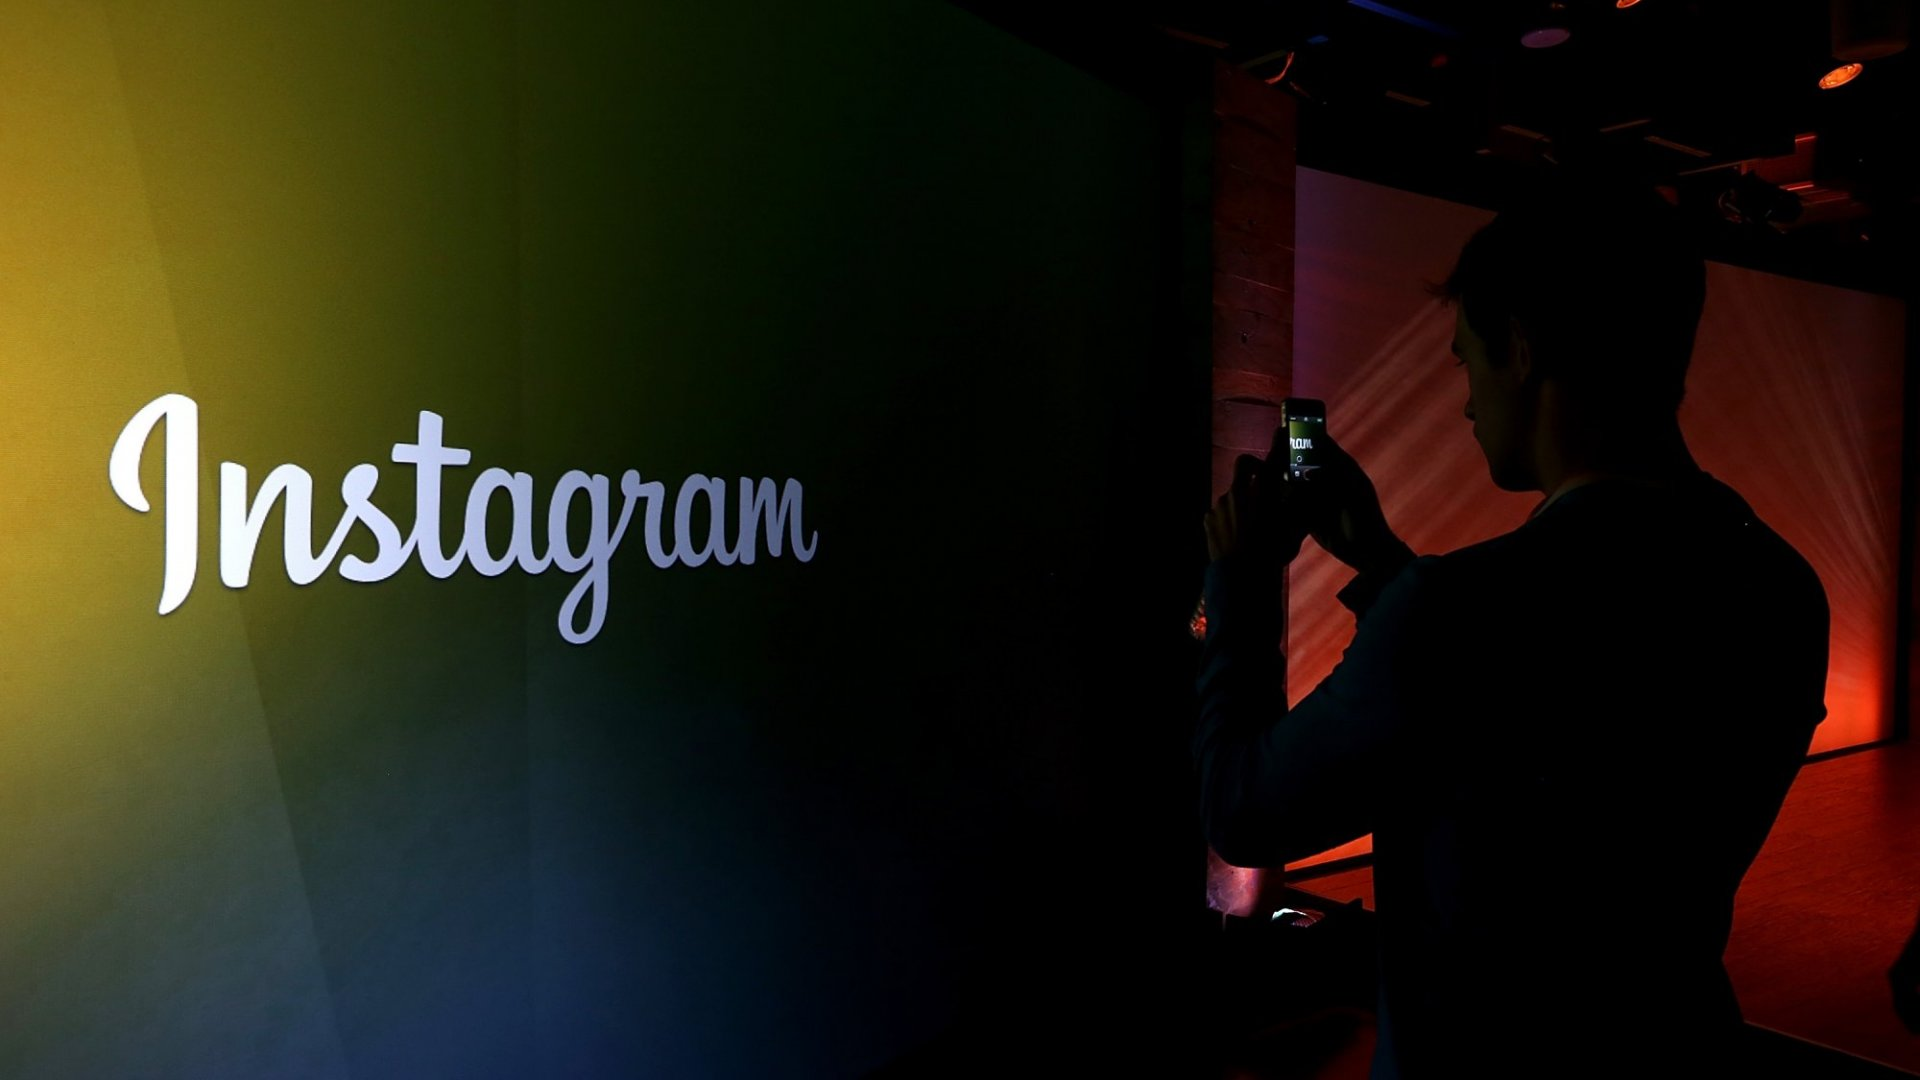 Instagram Co-Founder on How to Design a Great Product